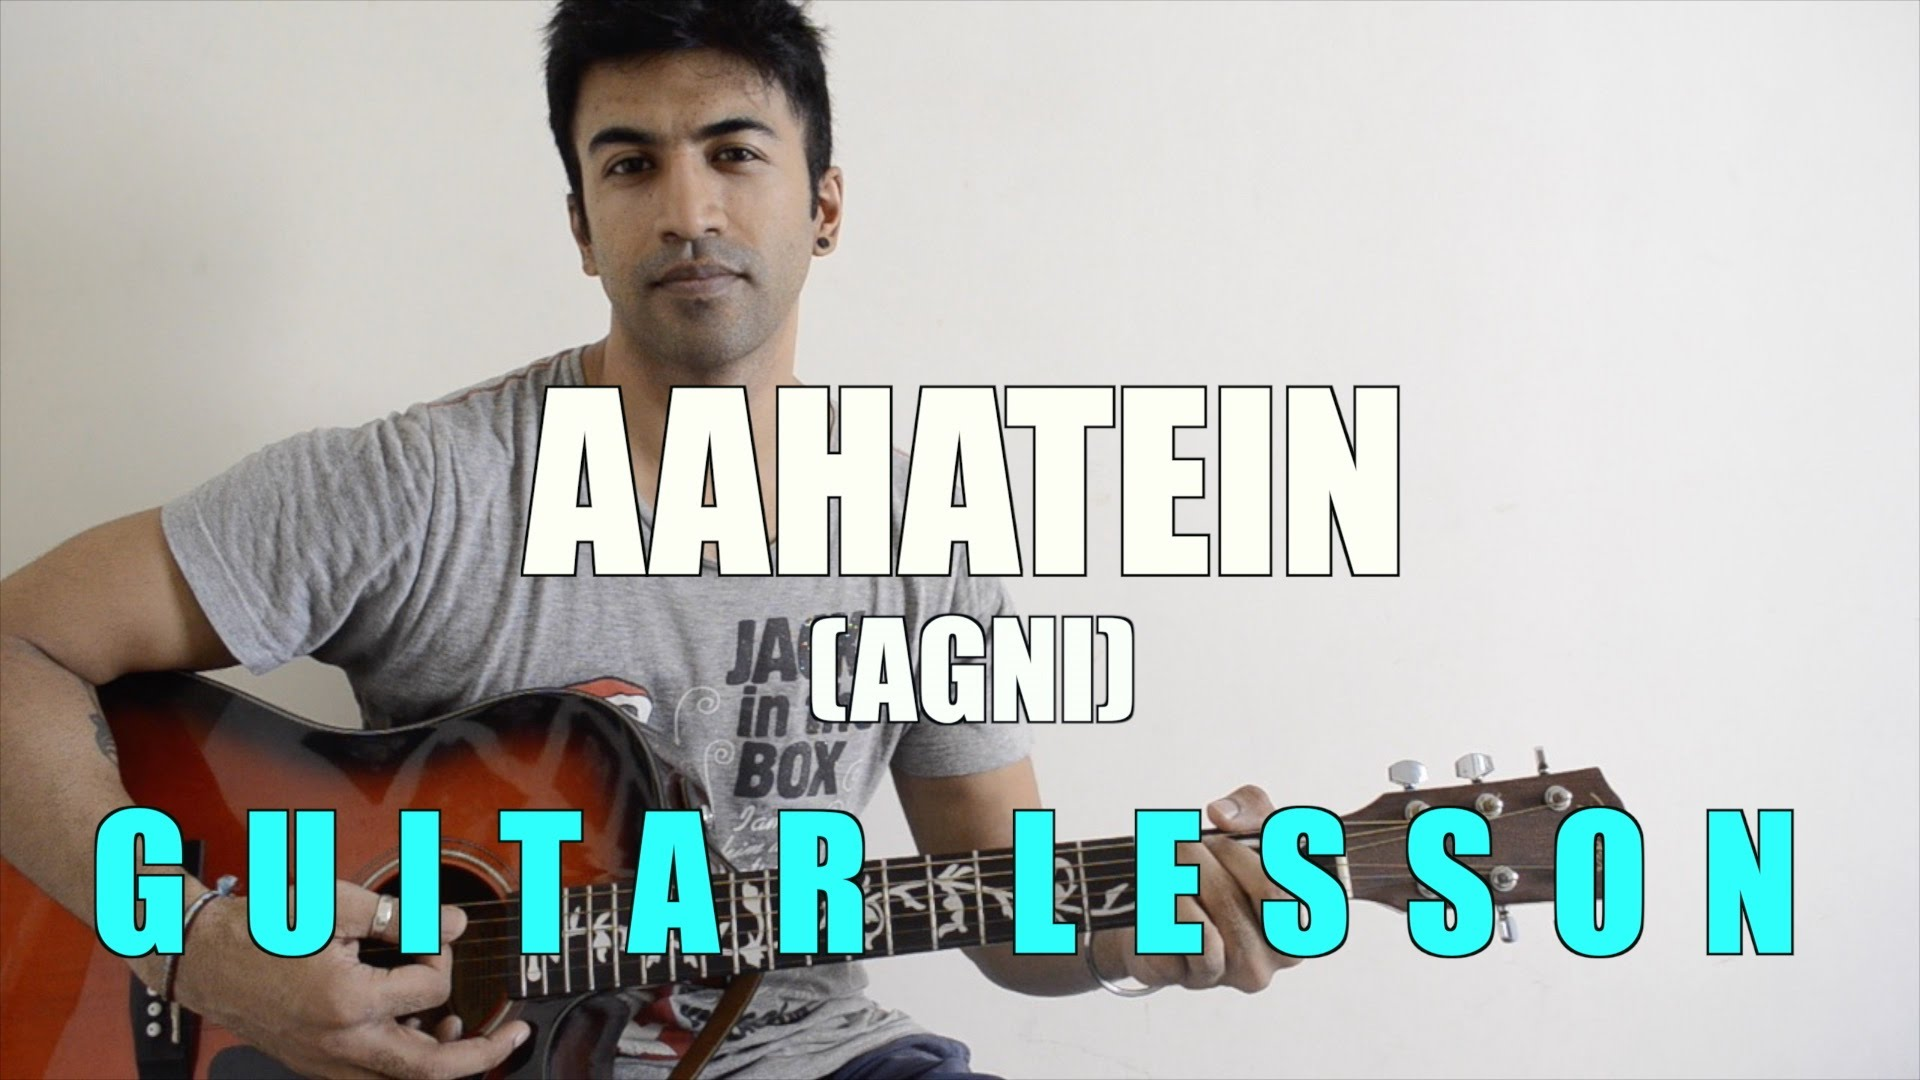 aahatein agnee chords capo